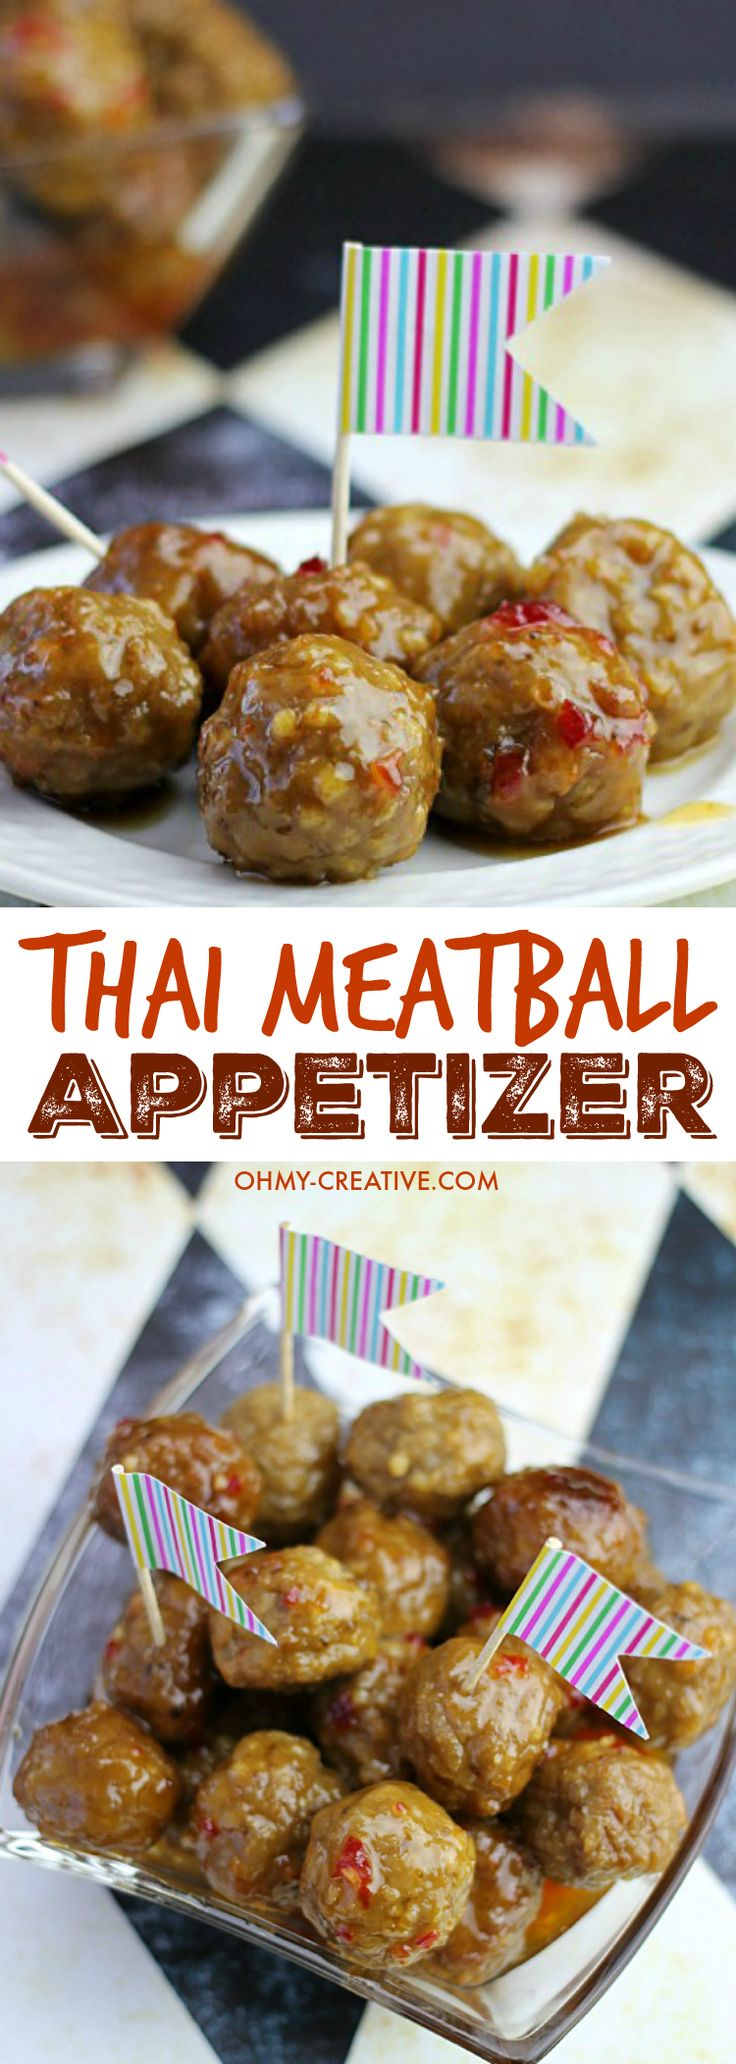 Meatballs are a trendy and delicious finger-food great for entertaining guests. Choose from one of these meatball appetizer recipes for your next party.